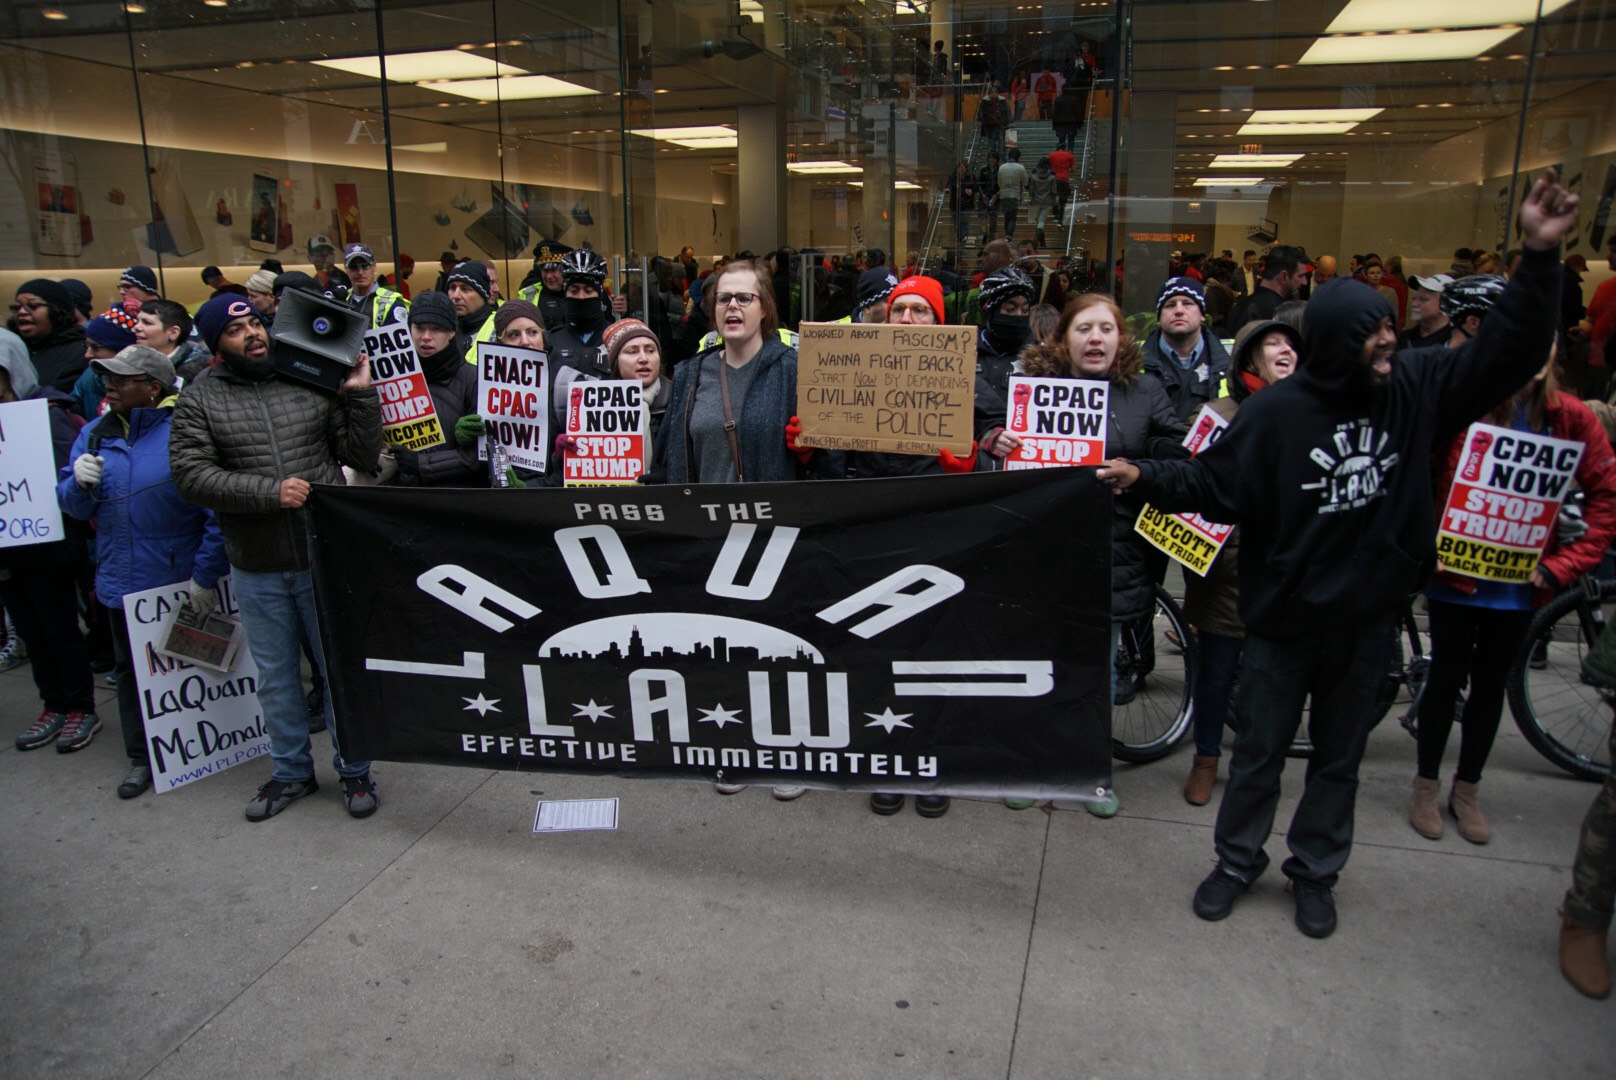 Activists at the Black Friday march also called for the state legislature to pass the Laquan McDonald Act, also known as the Laquan Law.